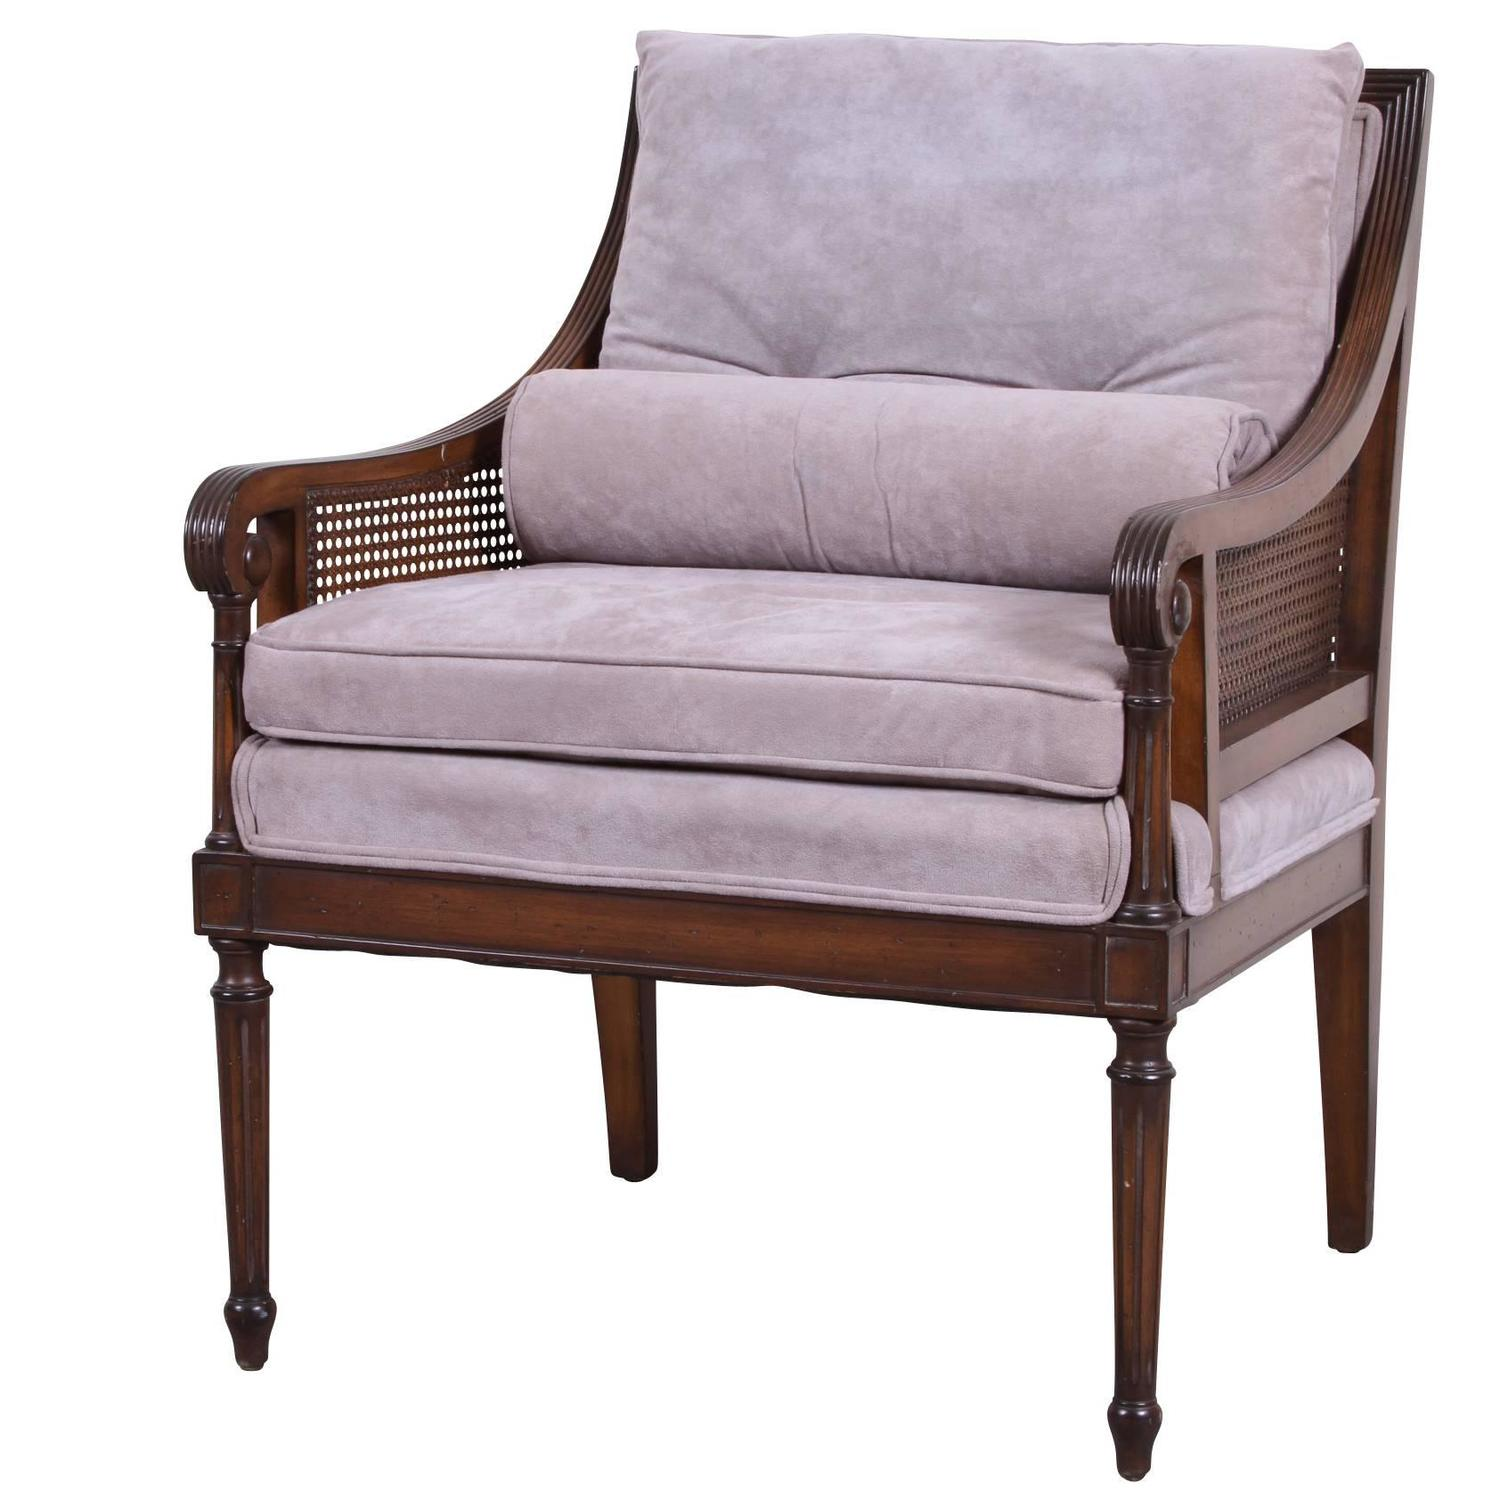 mid century louis xvi style bergere at 1stdibs. Black Bedroom Furniture Sets. Home Design Ideas